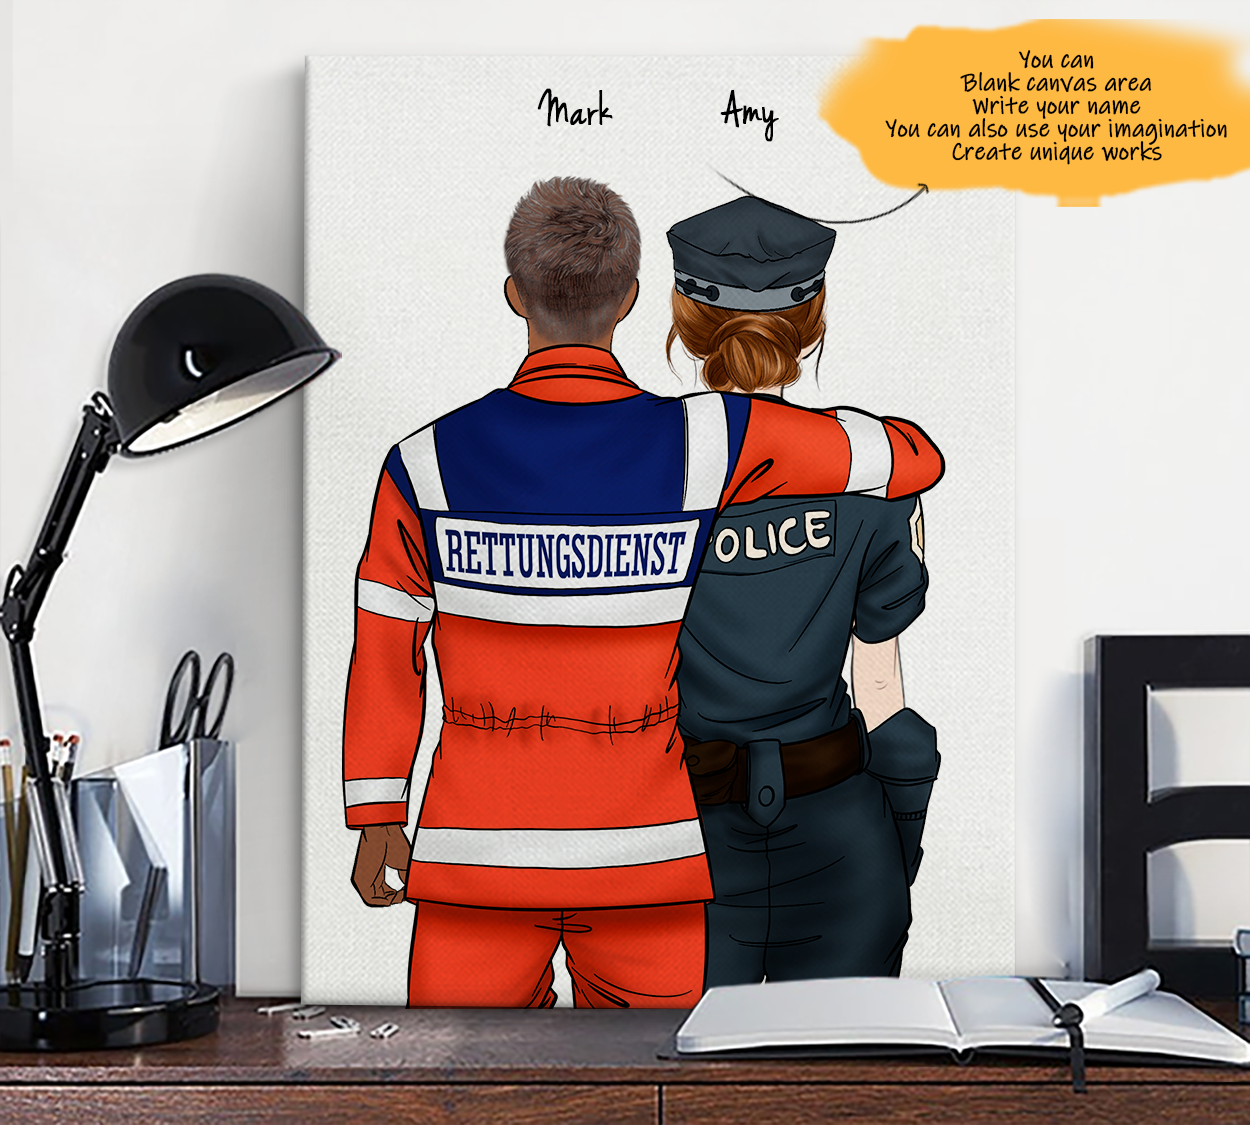 He is My Friend! Hand Draw Custom Canvas-Print Gift AmbulanceDriverGermany-Dark&Police1